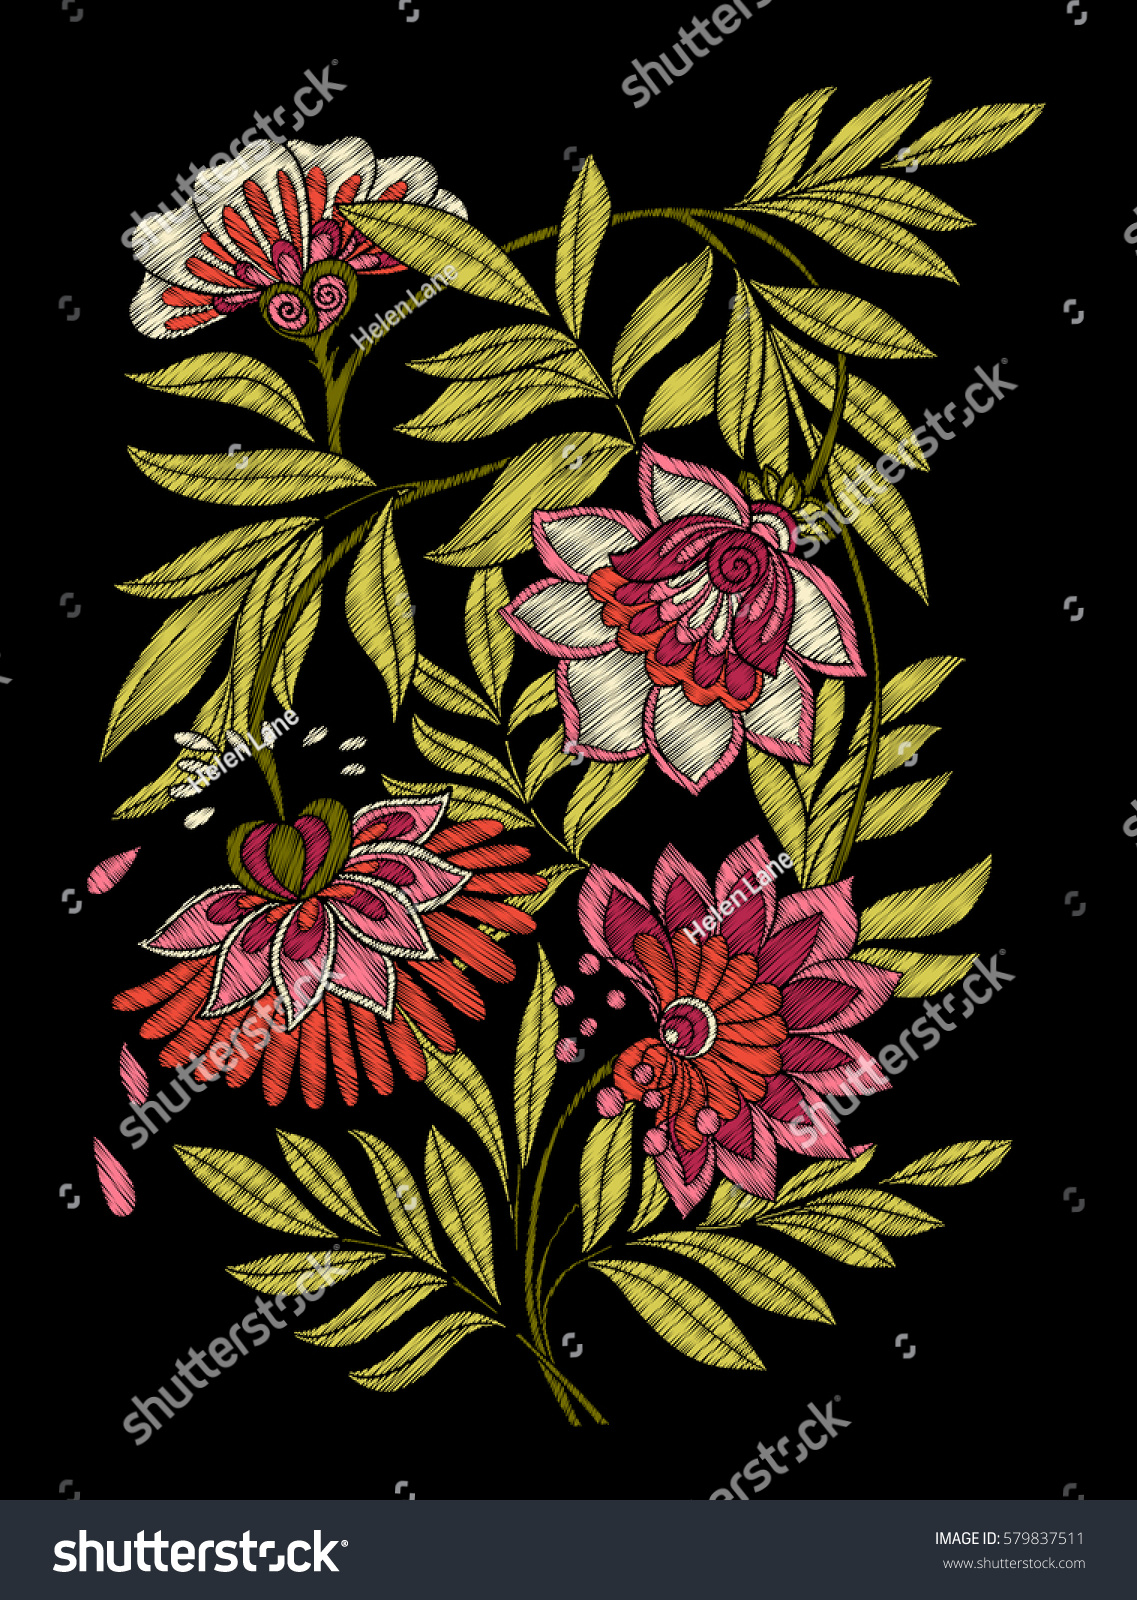 Embroidery embroidered design elements flowers leaves